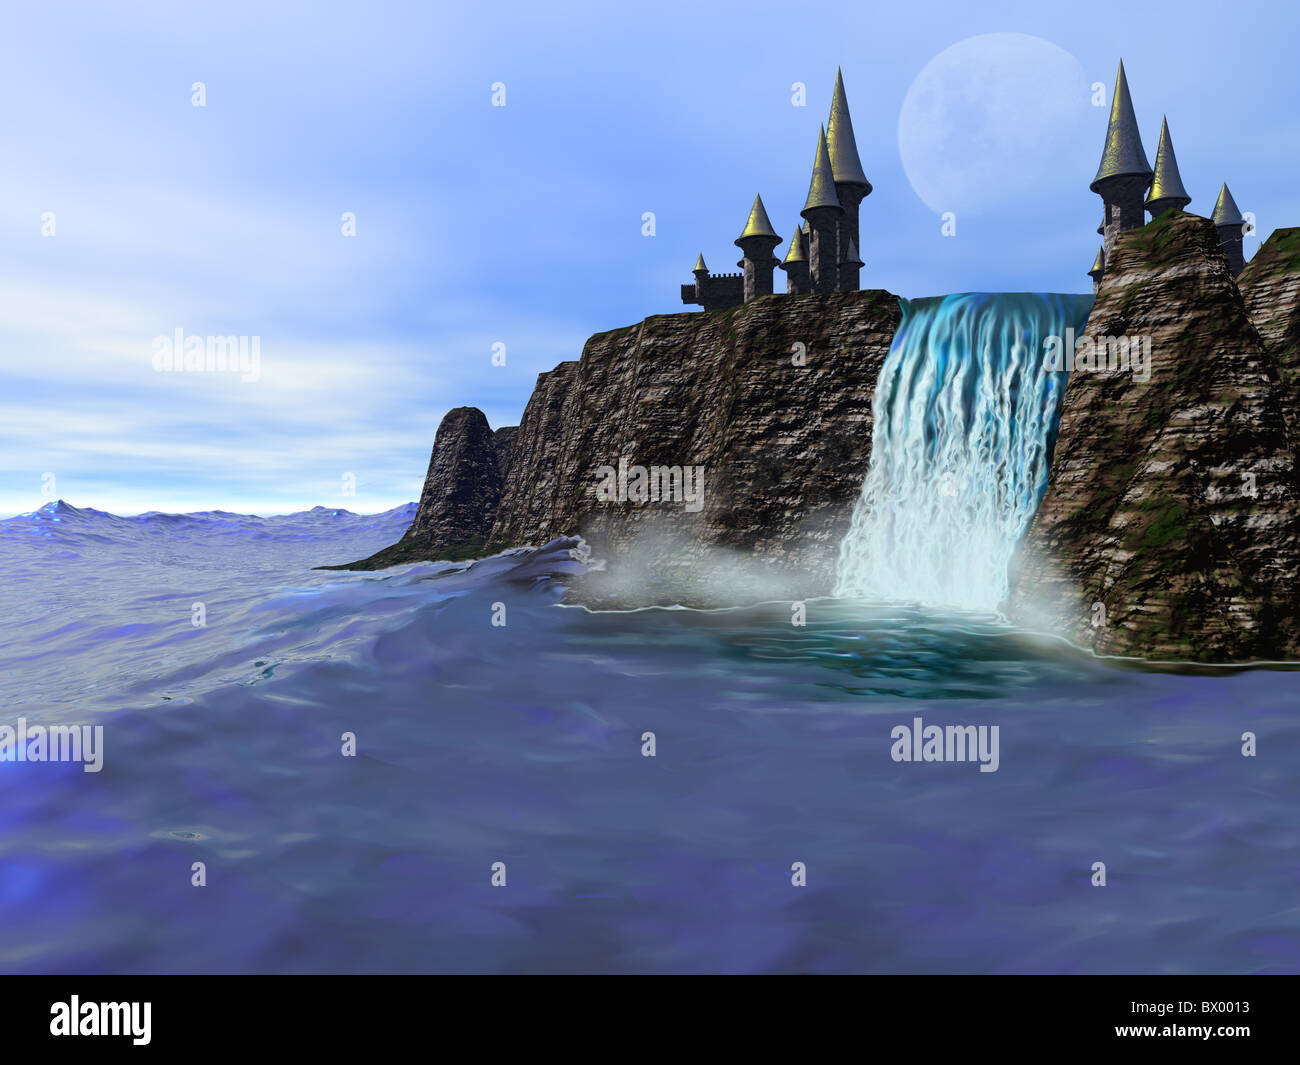 A beautiful waterfall meets the deep blue ocean in this fantasy castle image. - Stock Image